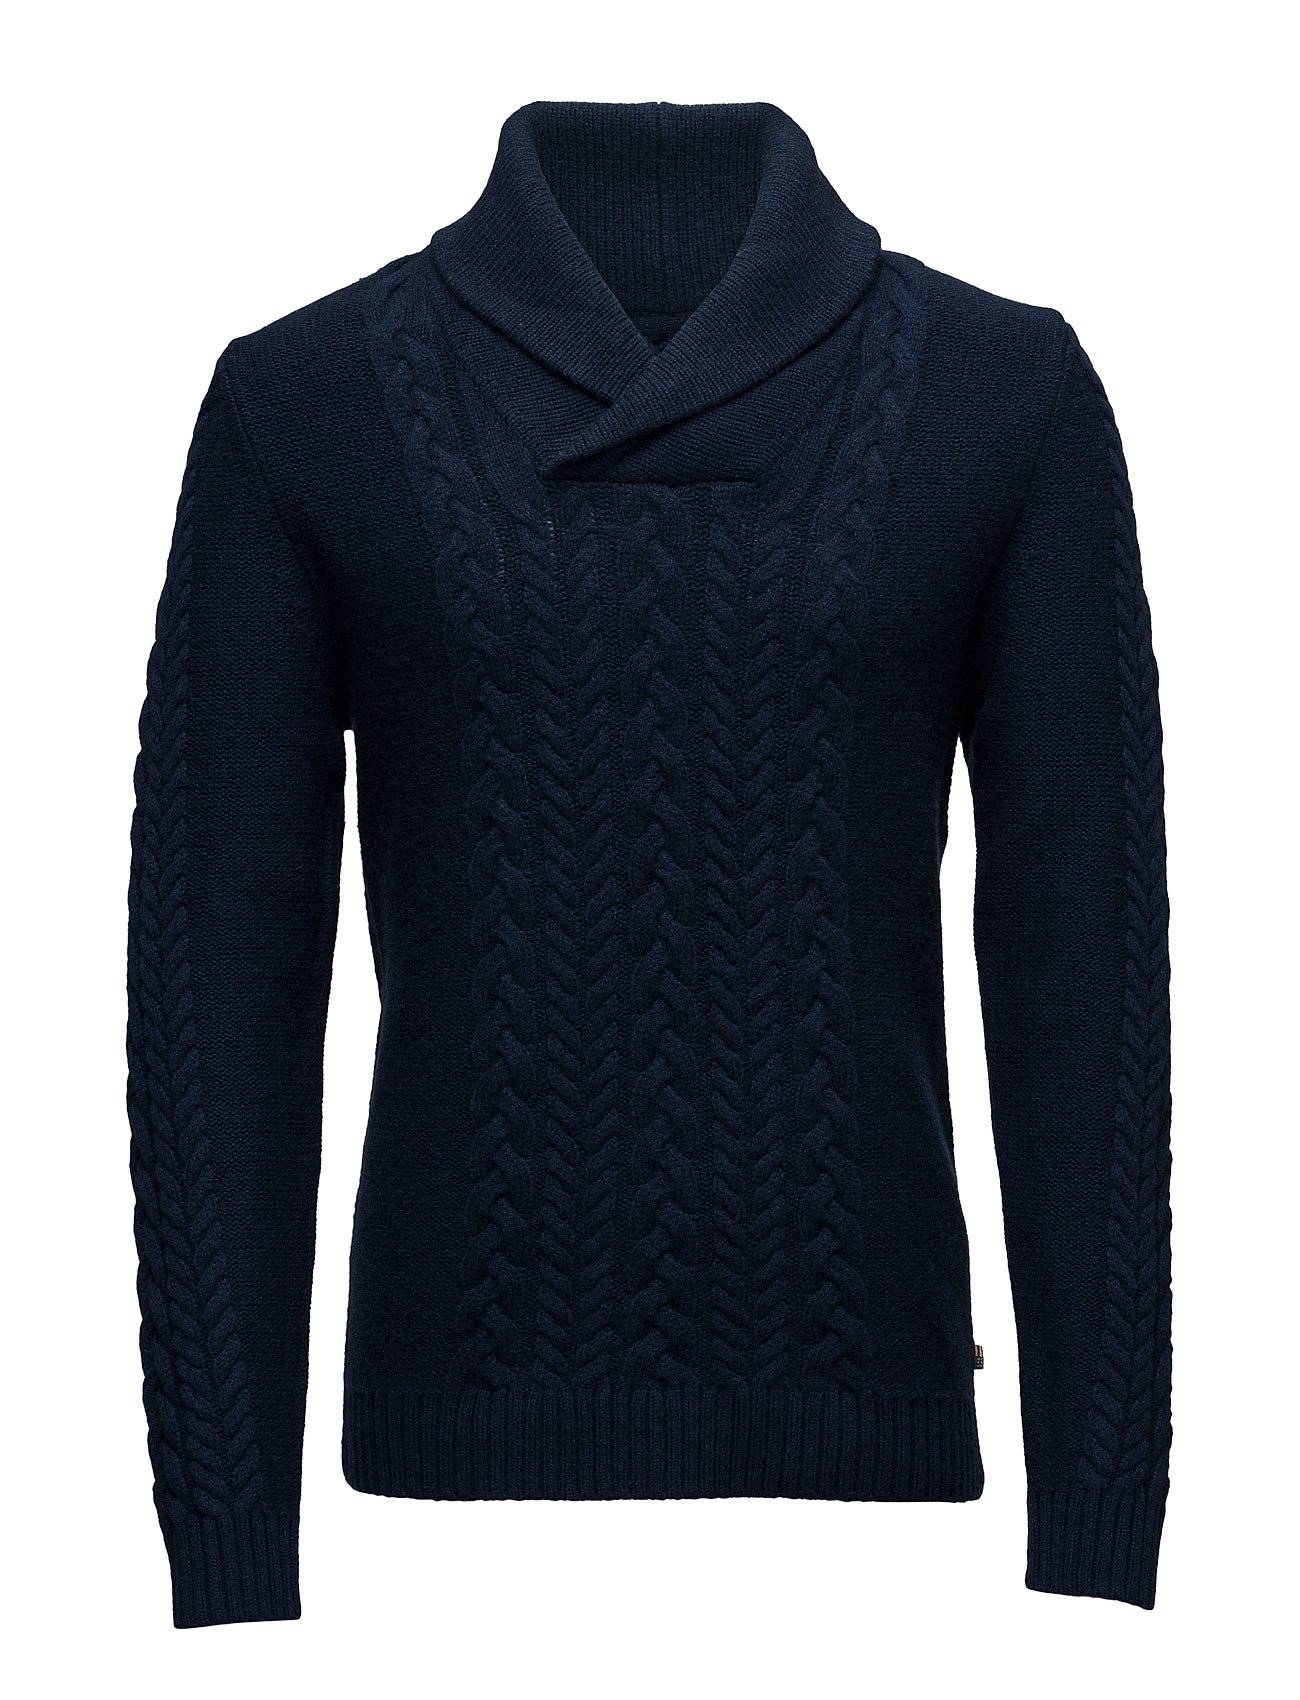 Lexington Company Gary Shawl Collar Sweater